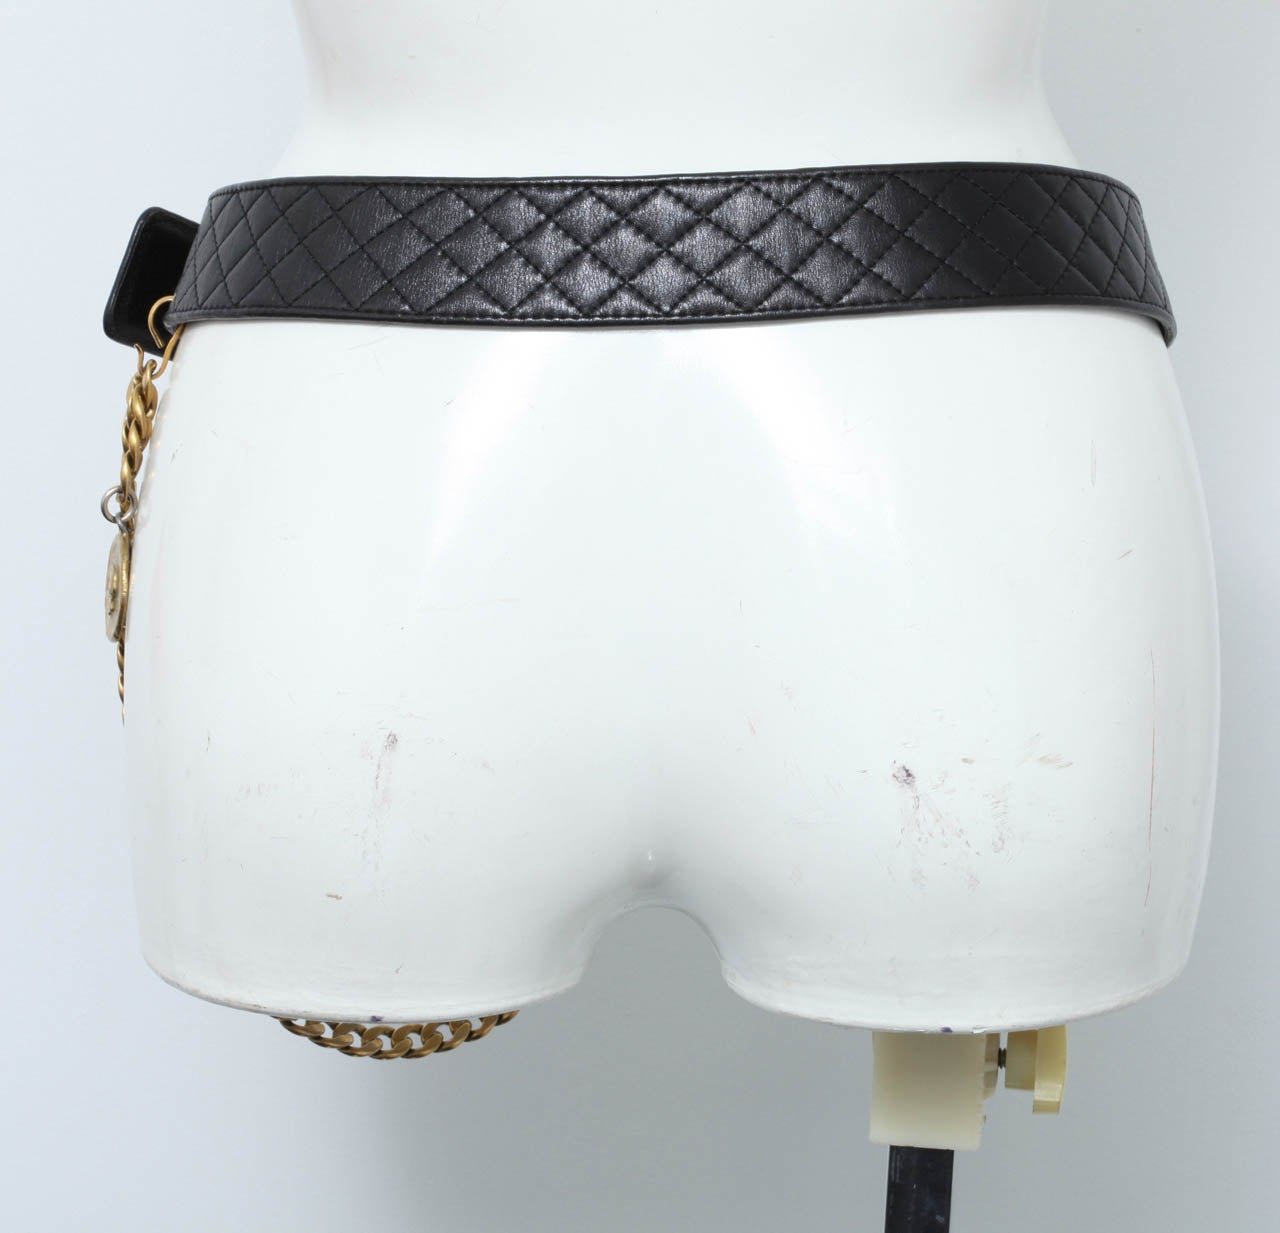 Vintage Chanel Belt with Pack and Gold Chain 8